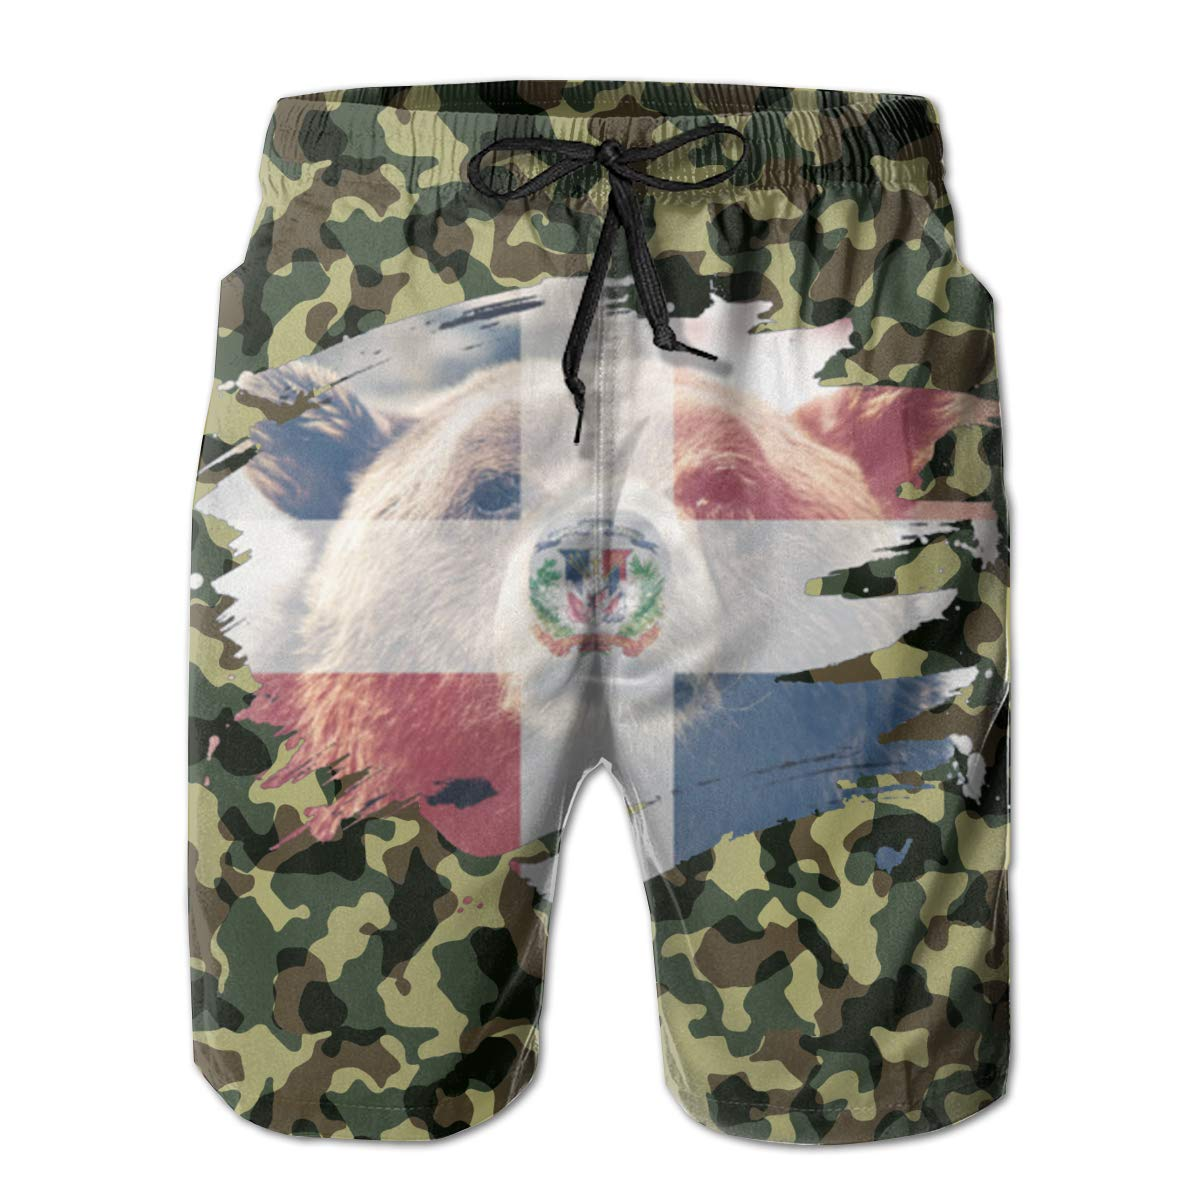 Reality And Ideals Dominican Republic Flag /& Bear Mens Swim Trunks Board Shorts